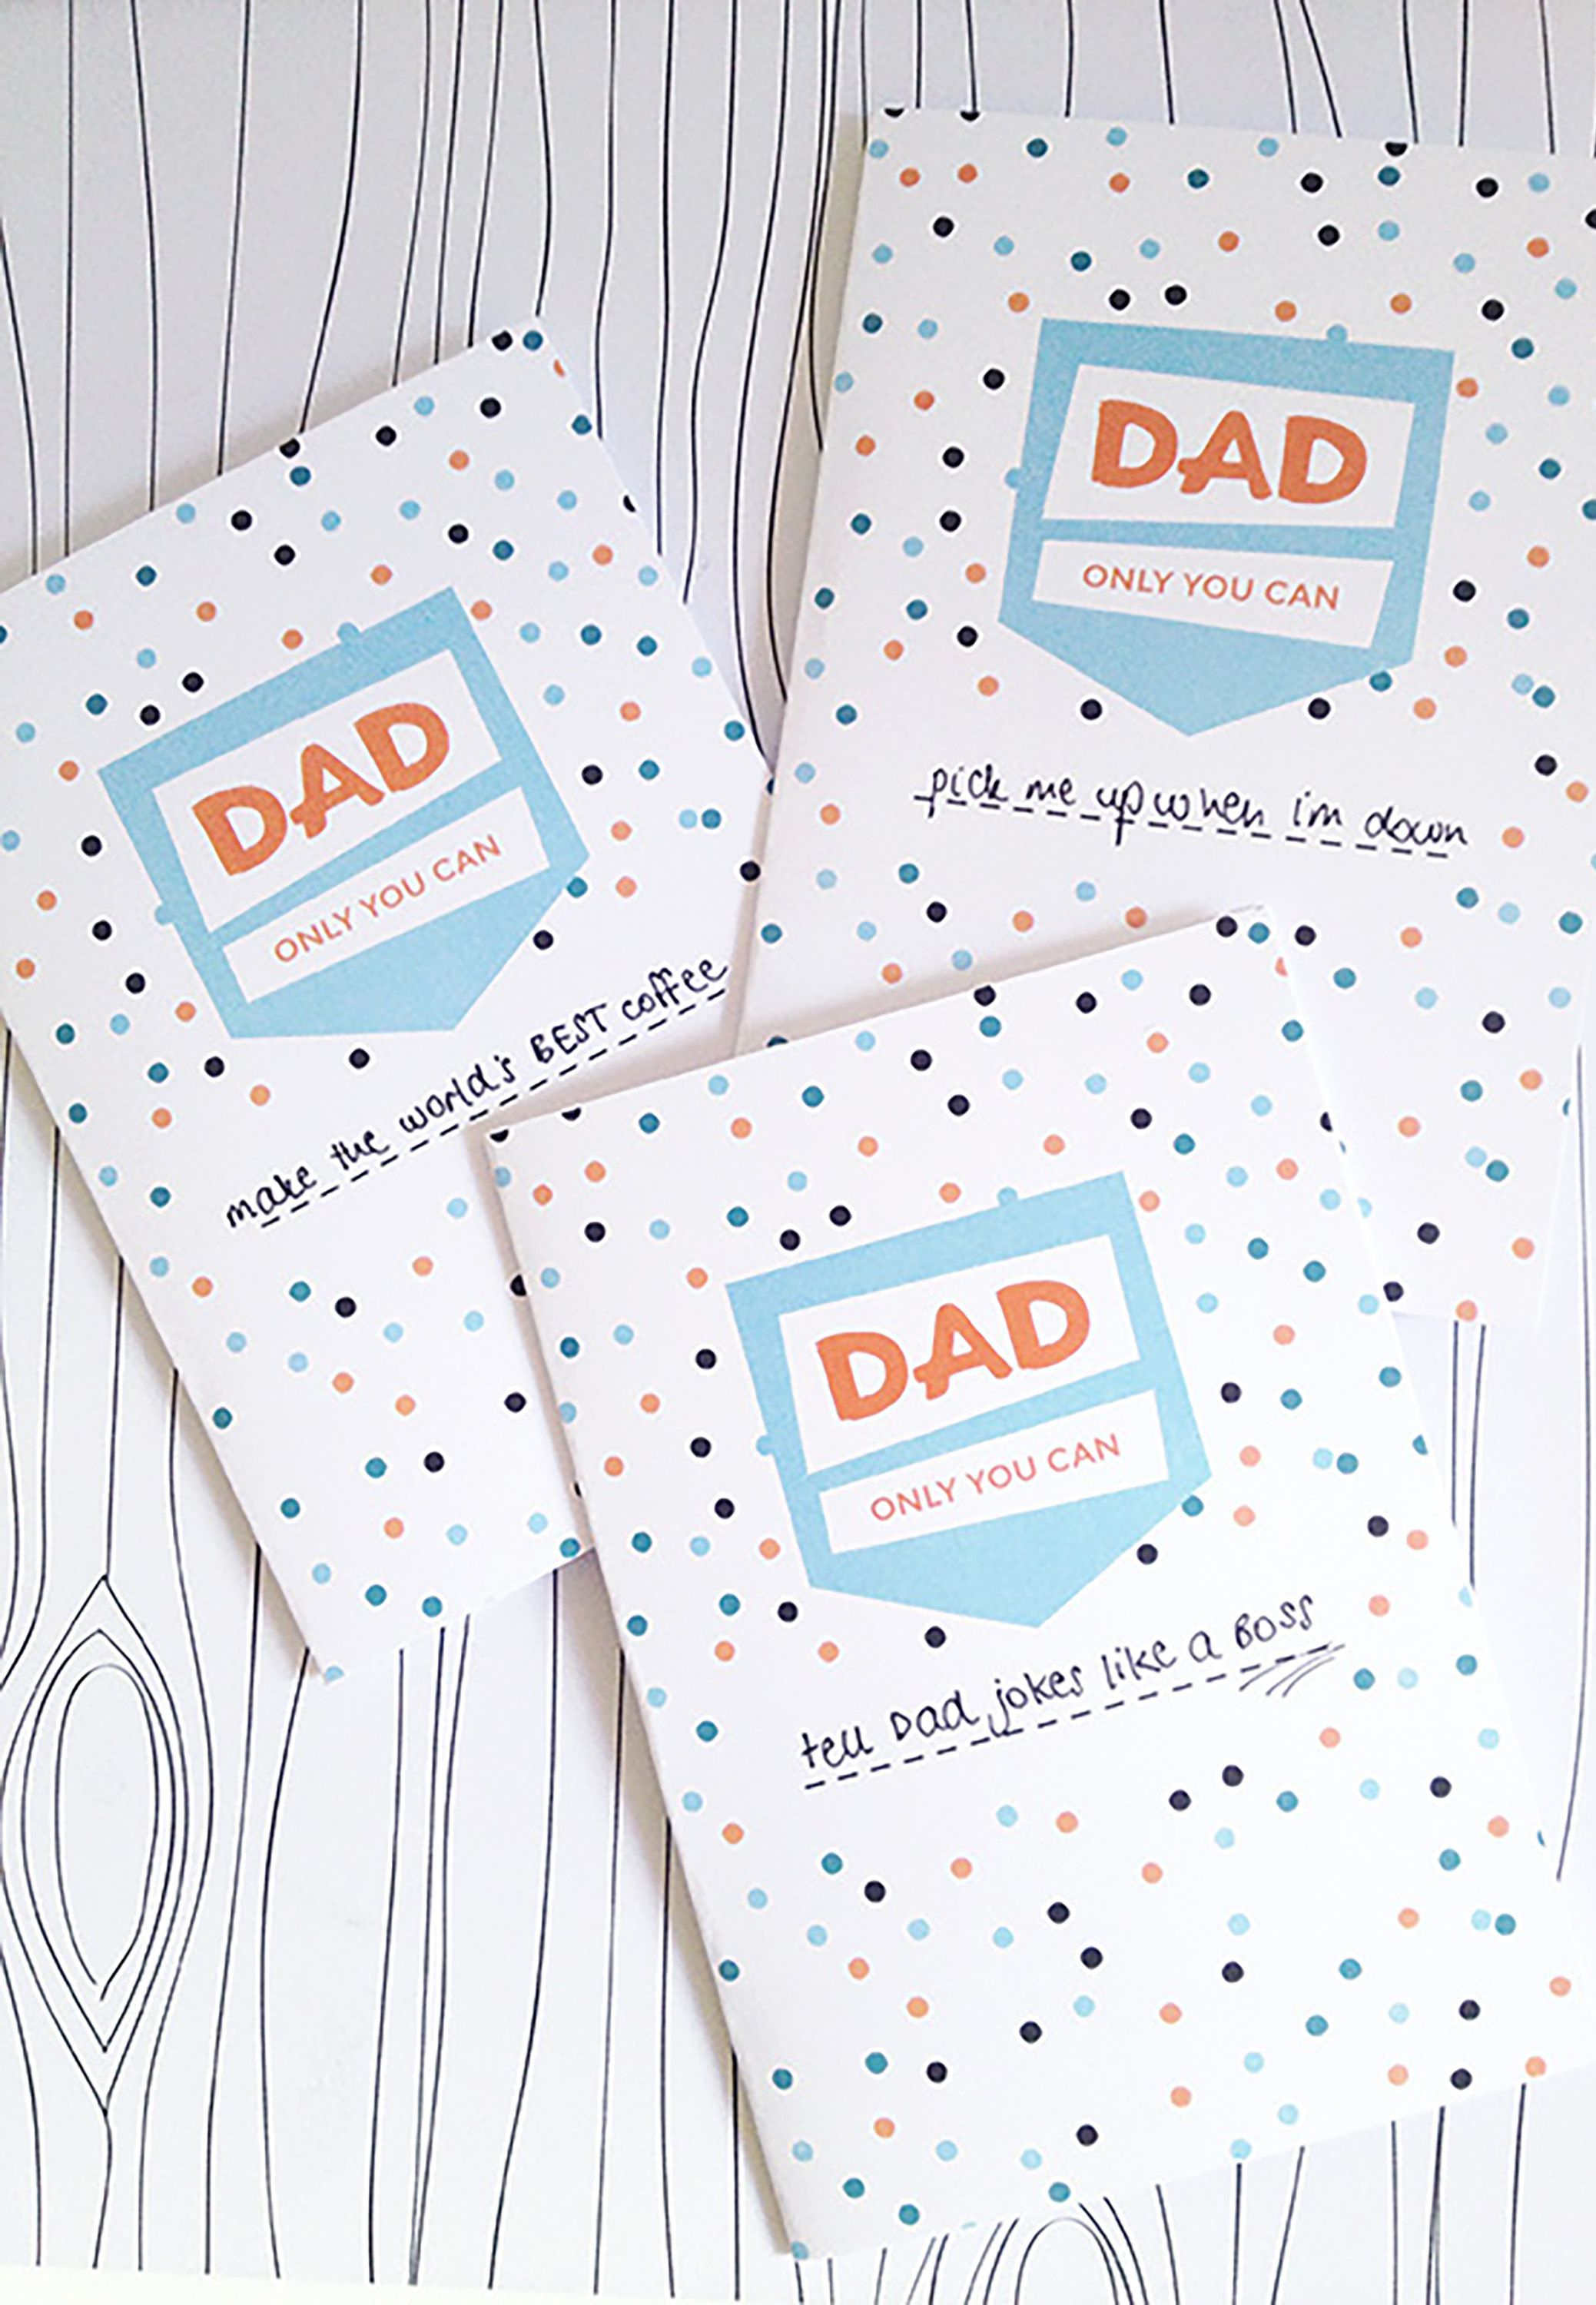 16 Printable Father's Day Cards - Free Printable Cards For Father's Day - Boss Day Cards Free Printable